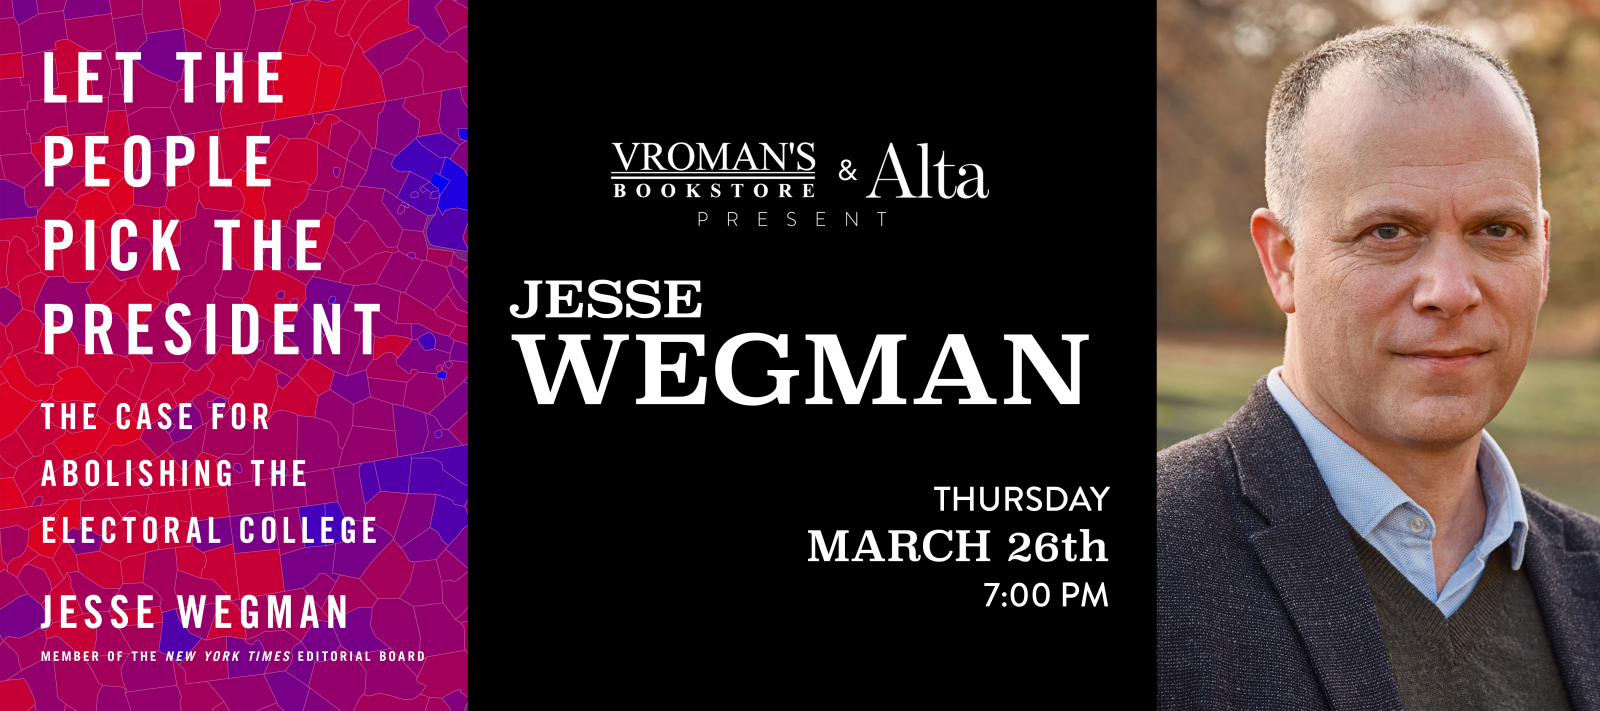 Jesse Wegman book signing on Thursday, March 26, at 7pm